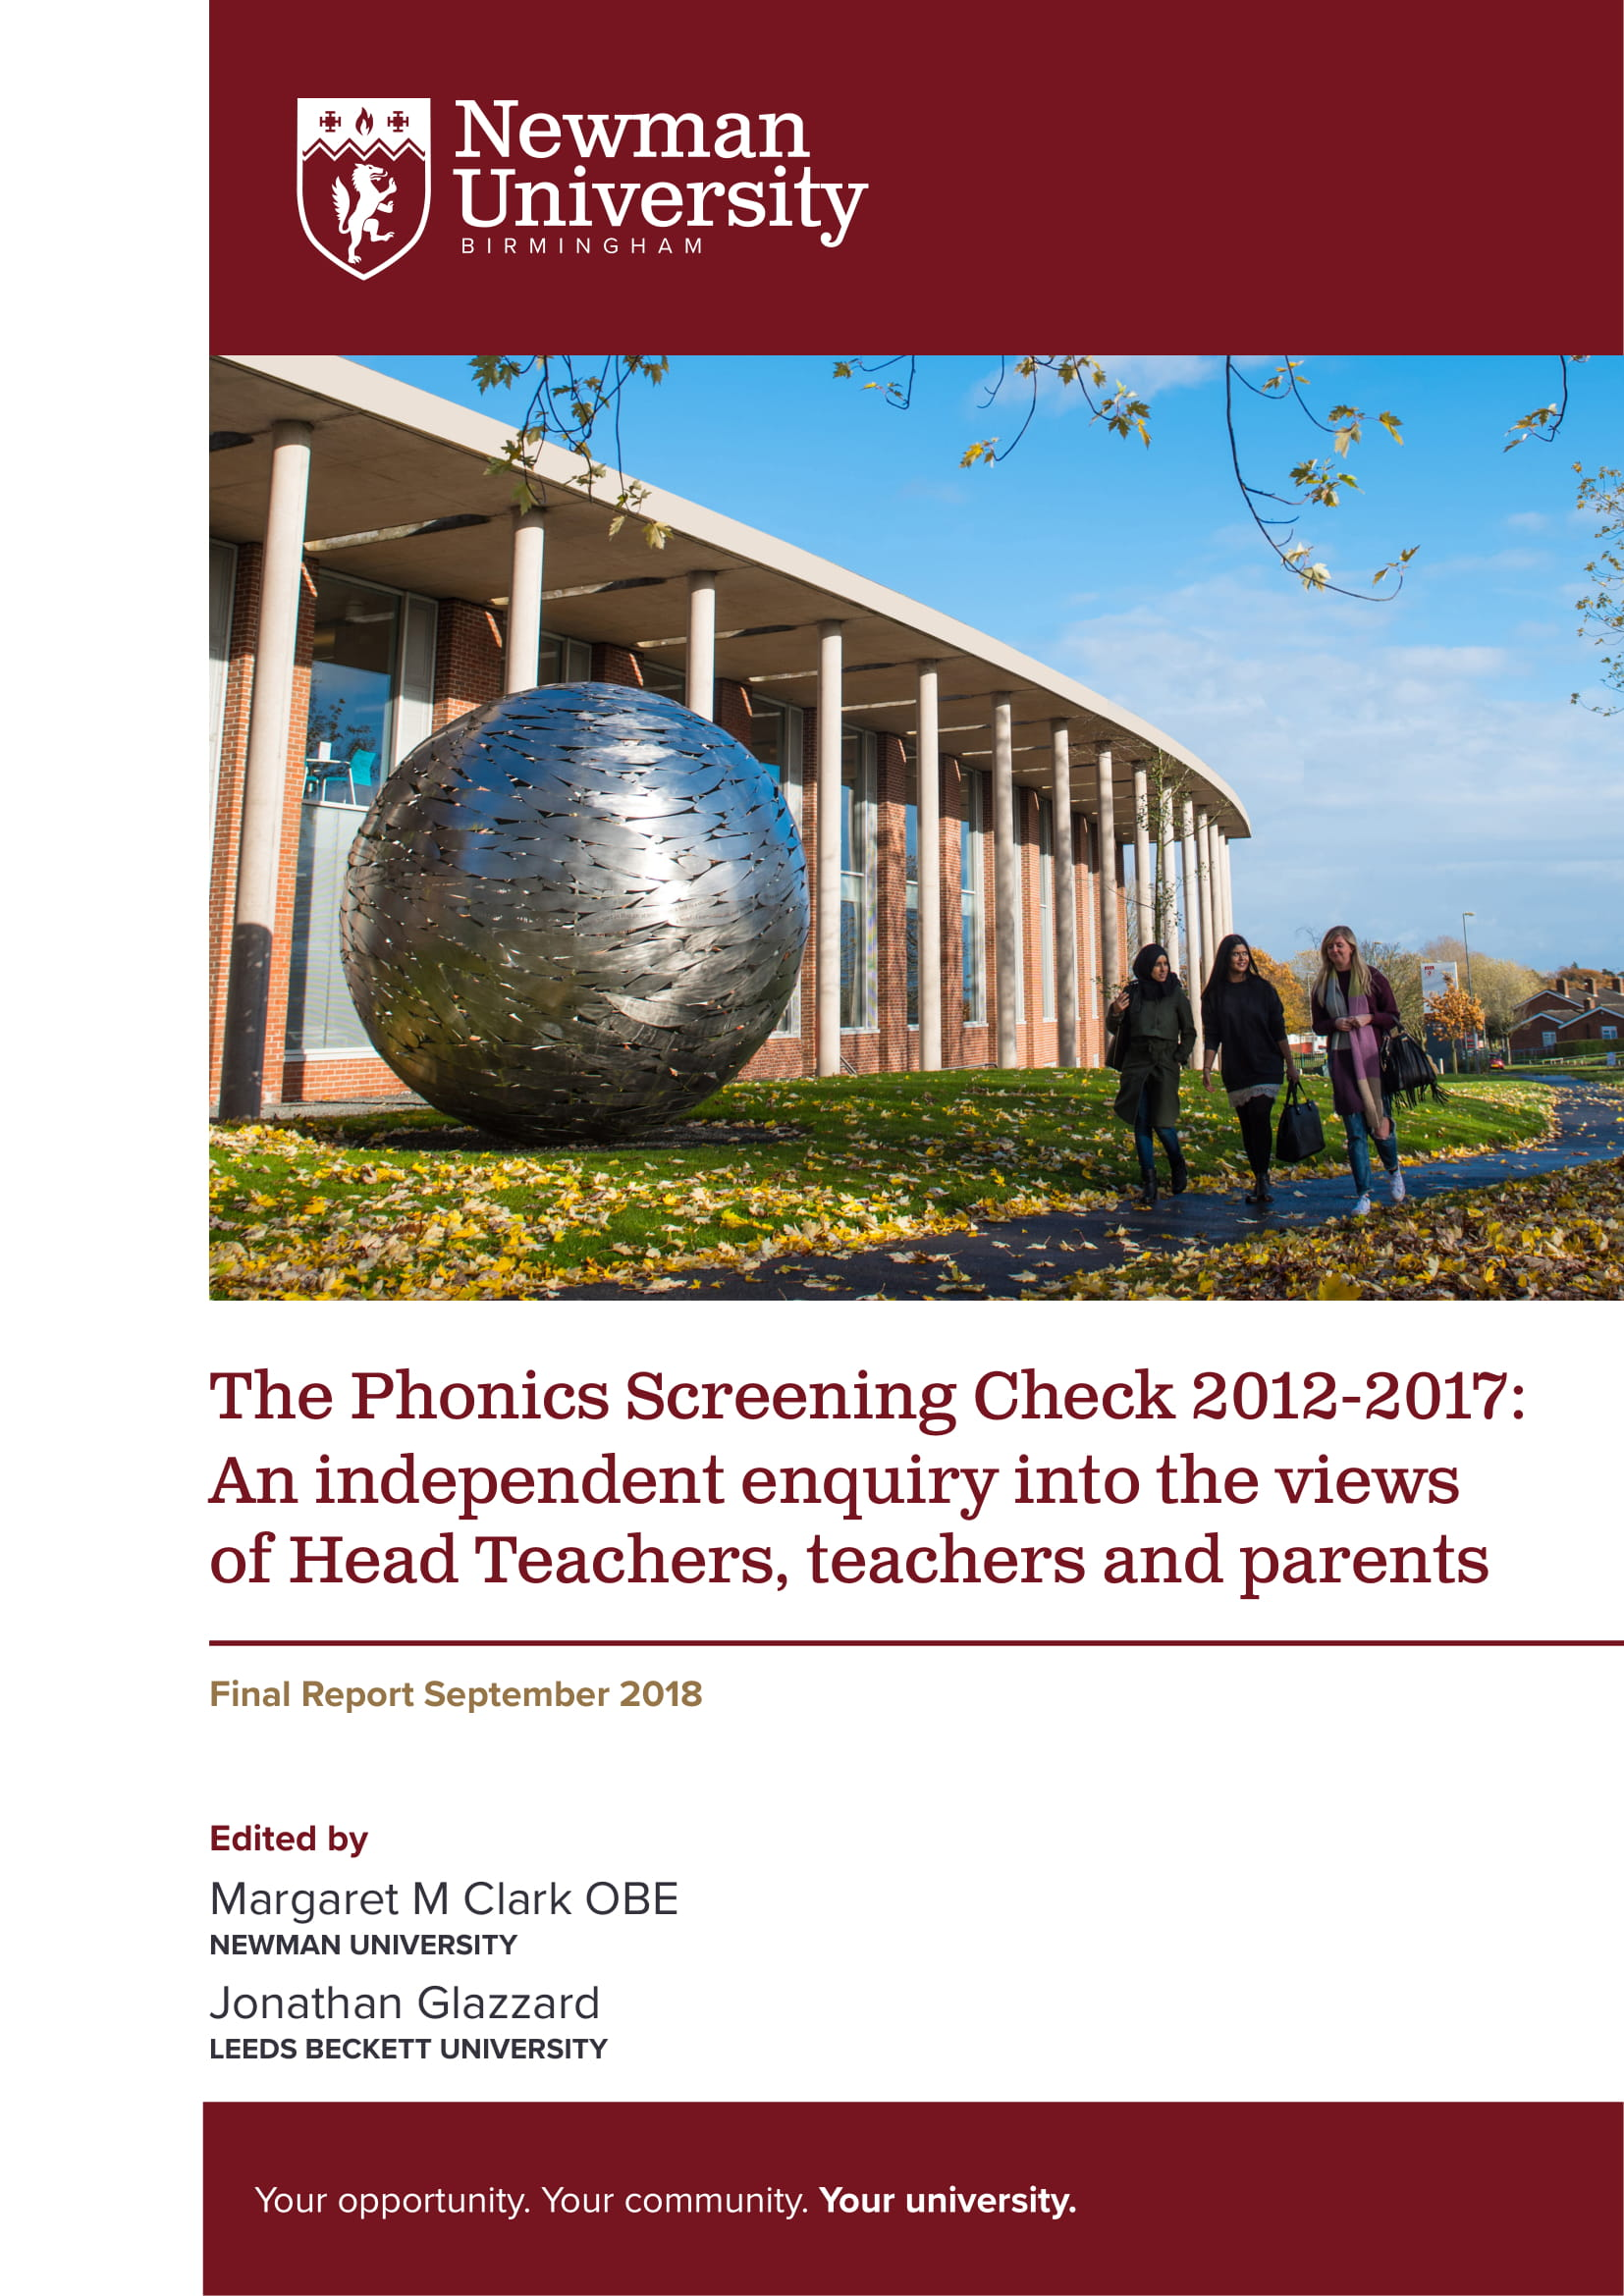 The Phonics Screening Check report - click to download